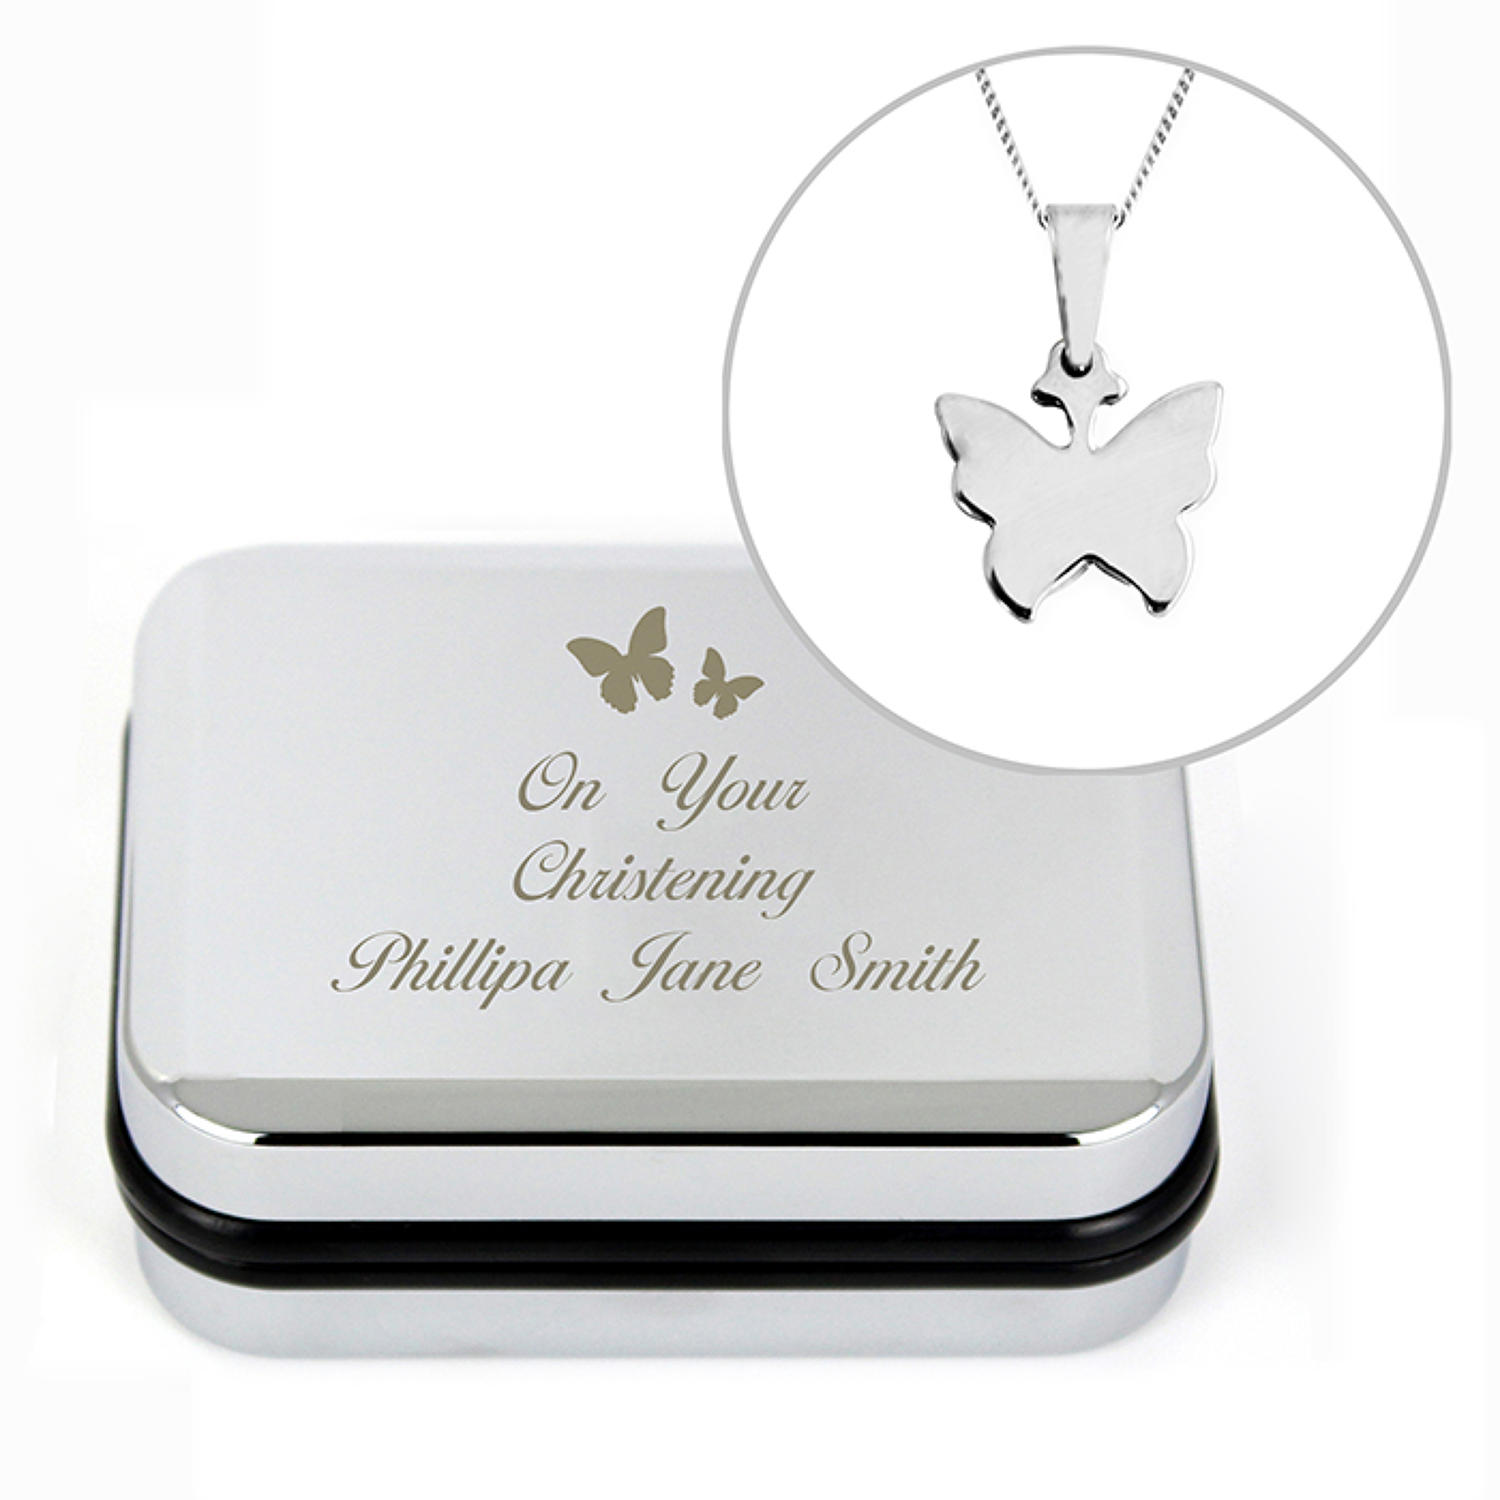 Personalised Butterfly Swirl Necklace in Box & Necklace